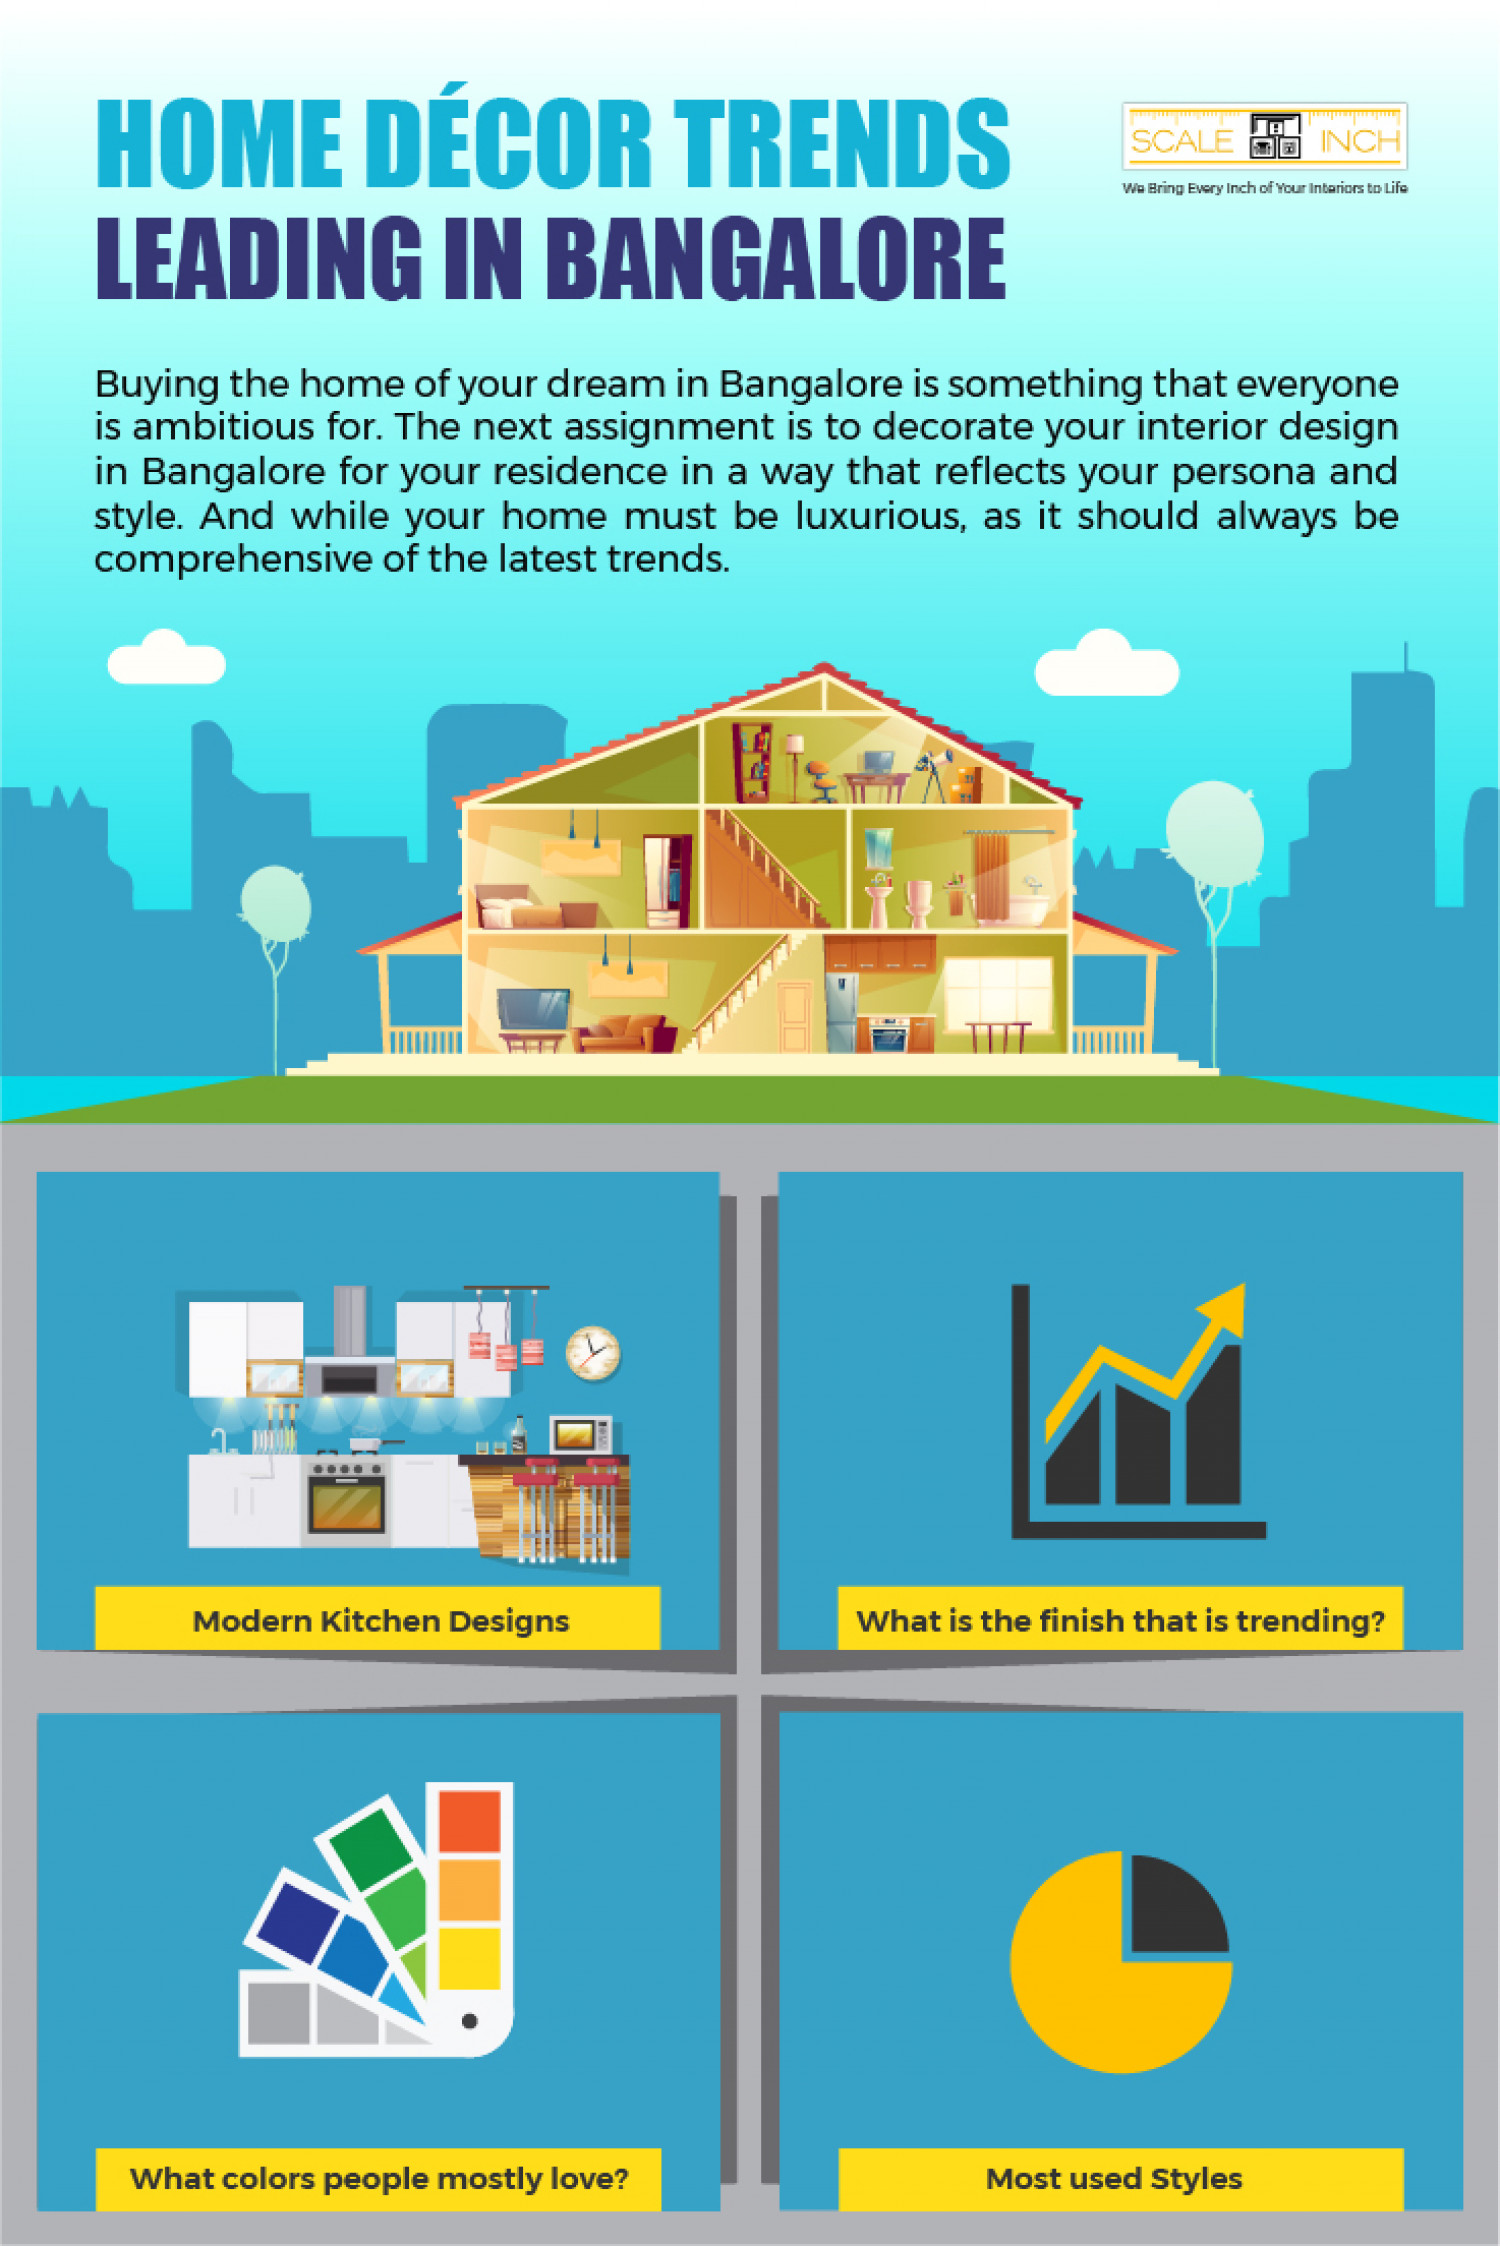 Home Decoration Trends Infographic